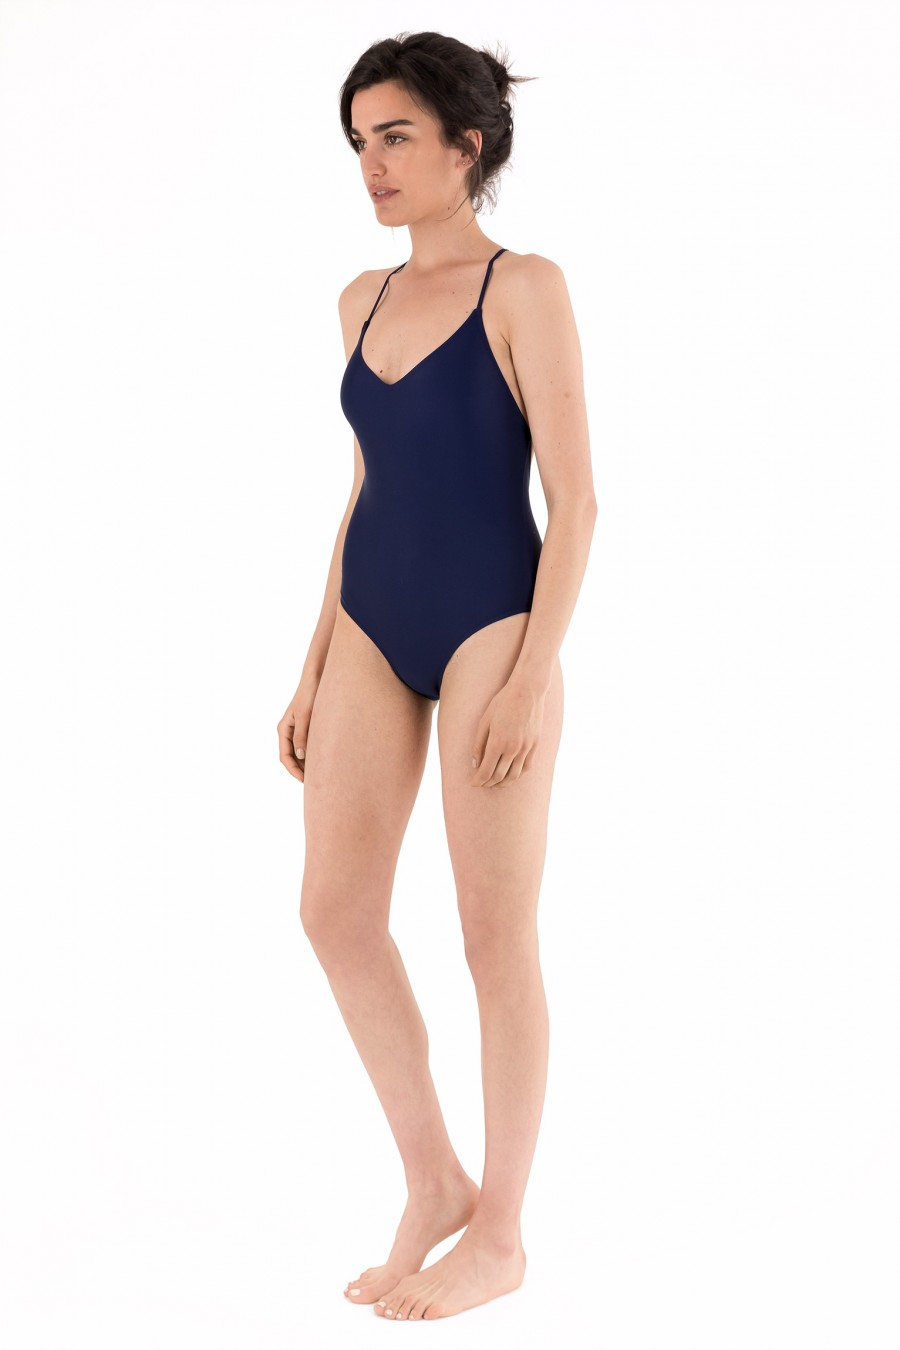 Blue one-piece swimsuit with thin straps